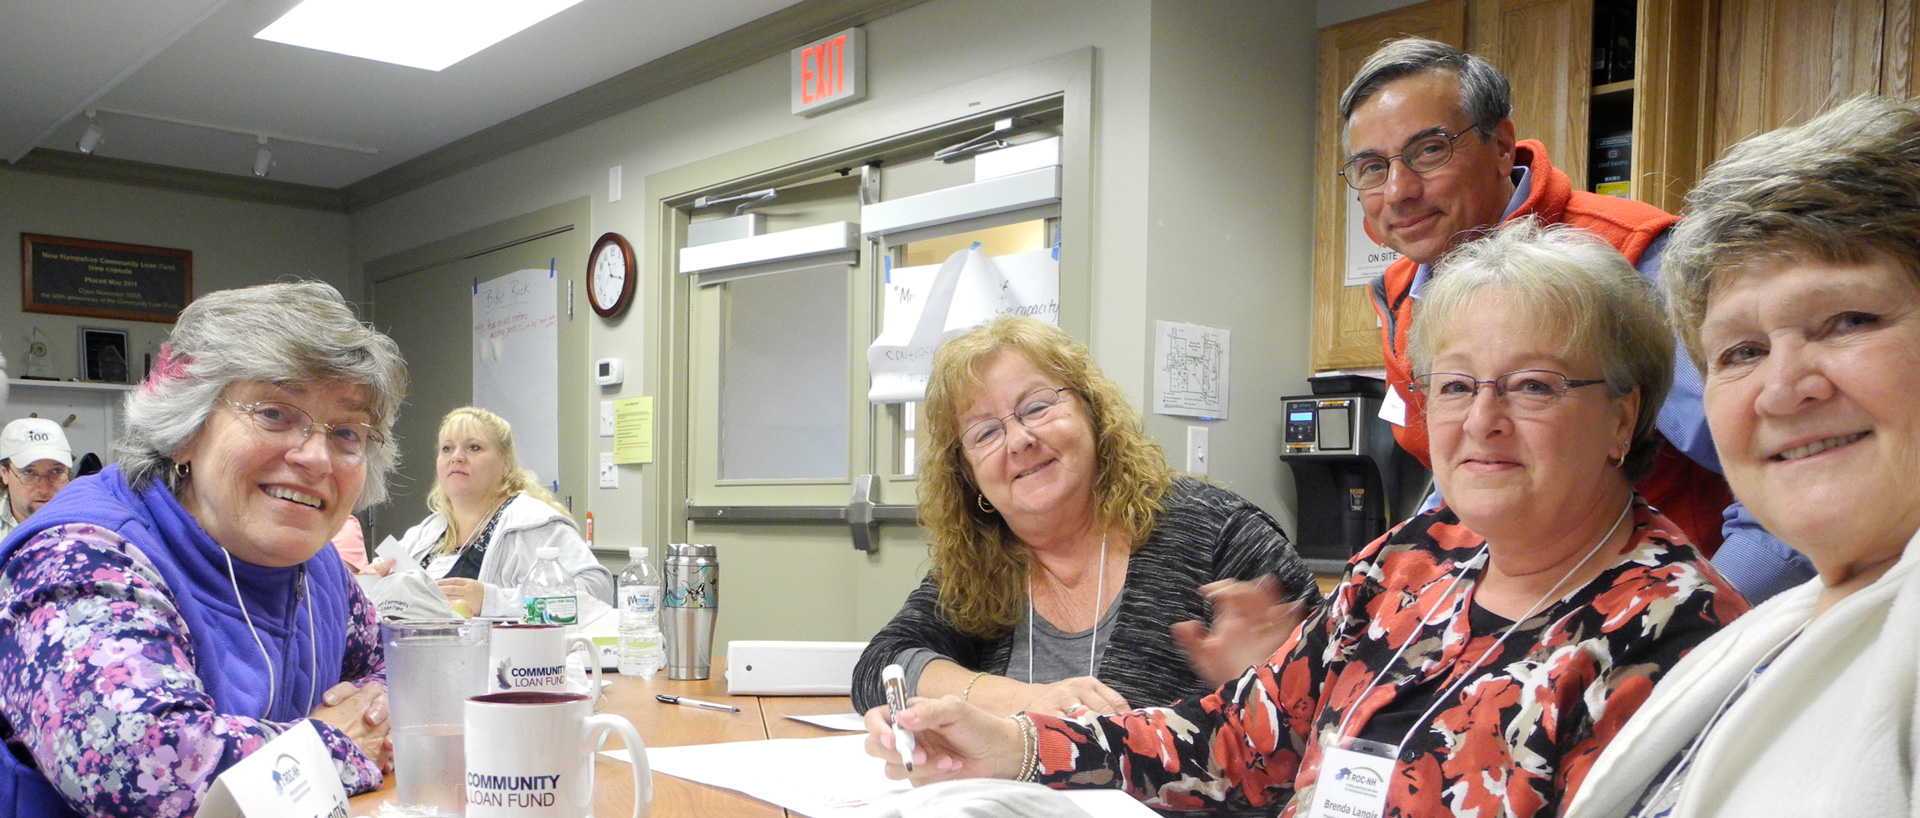 group working around table and smiling at camera